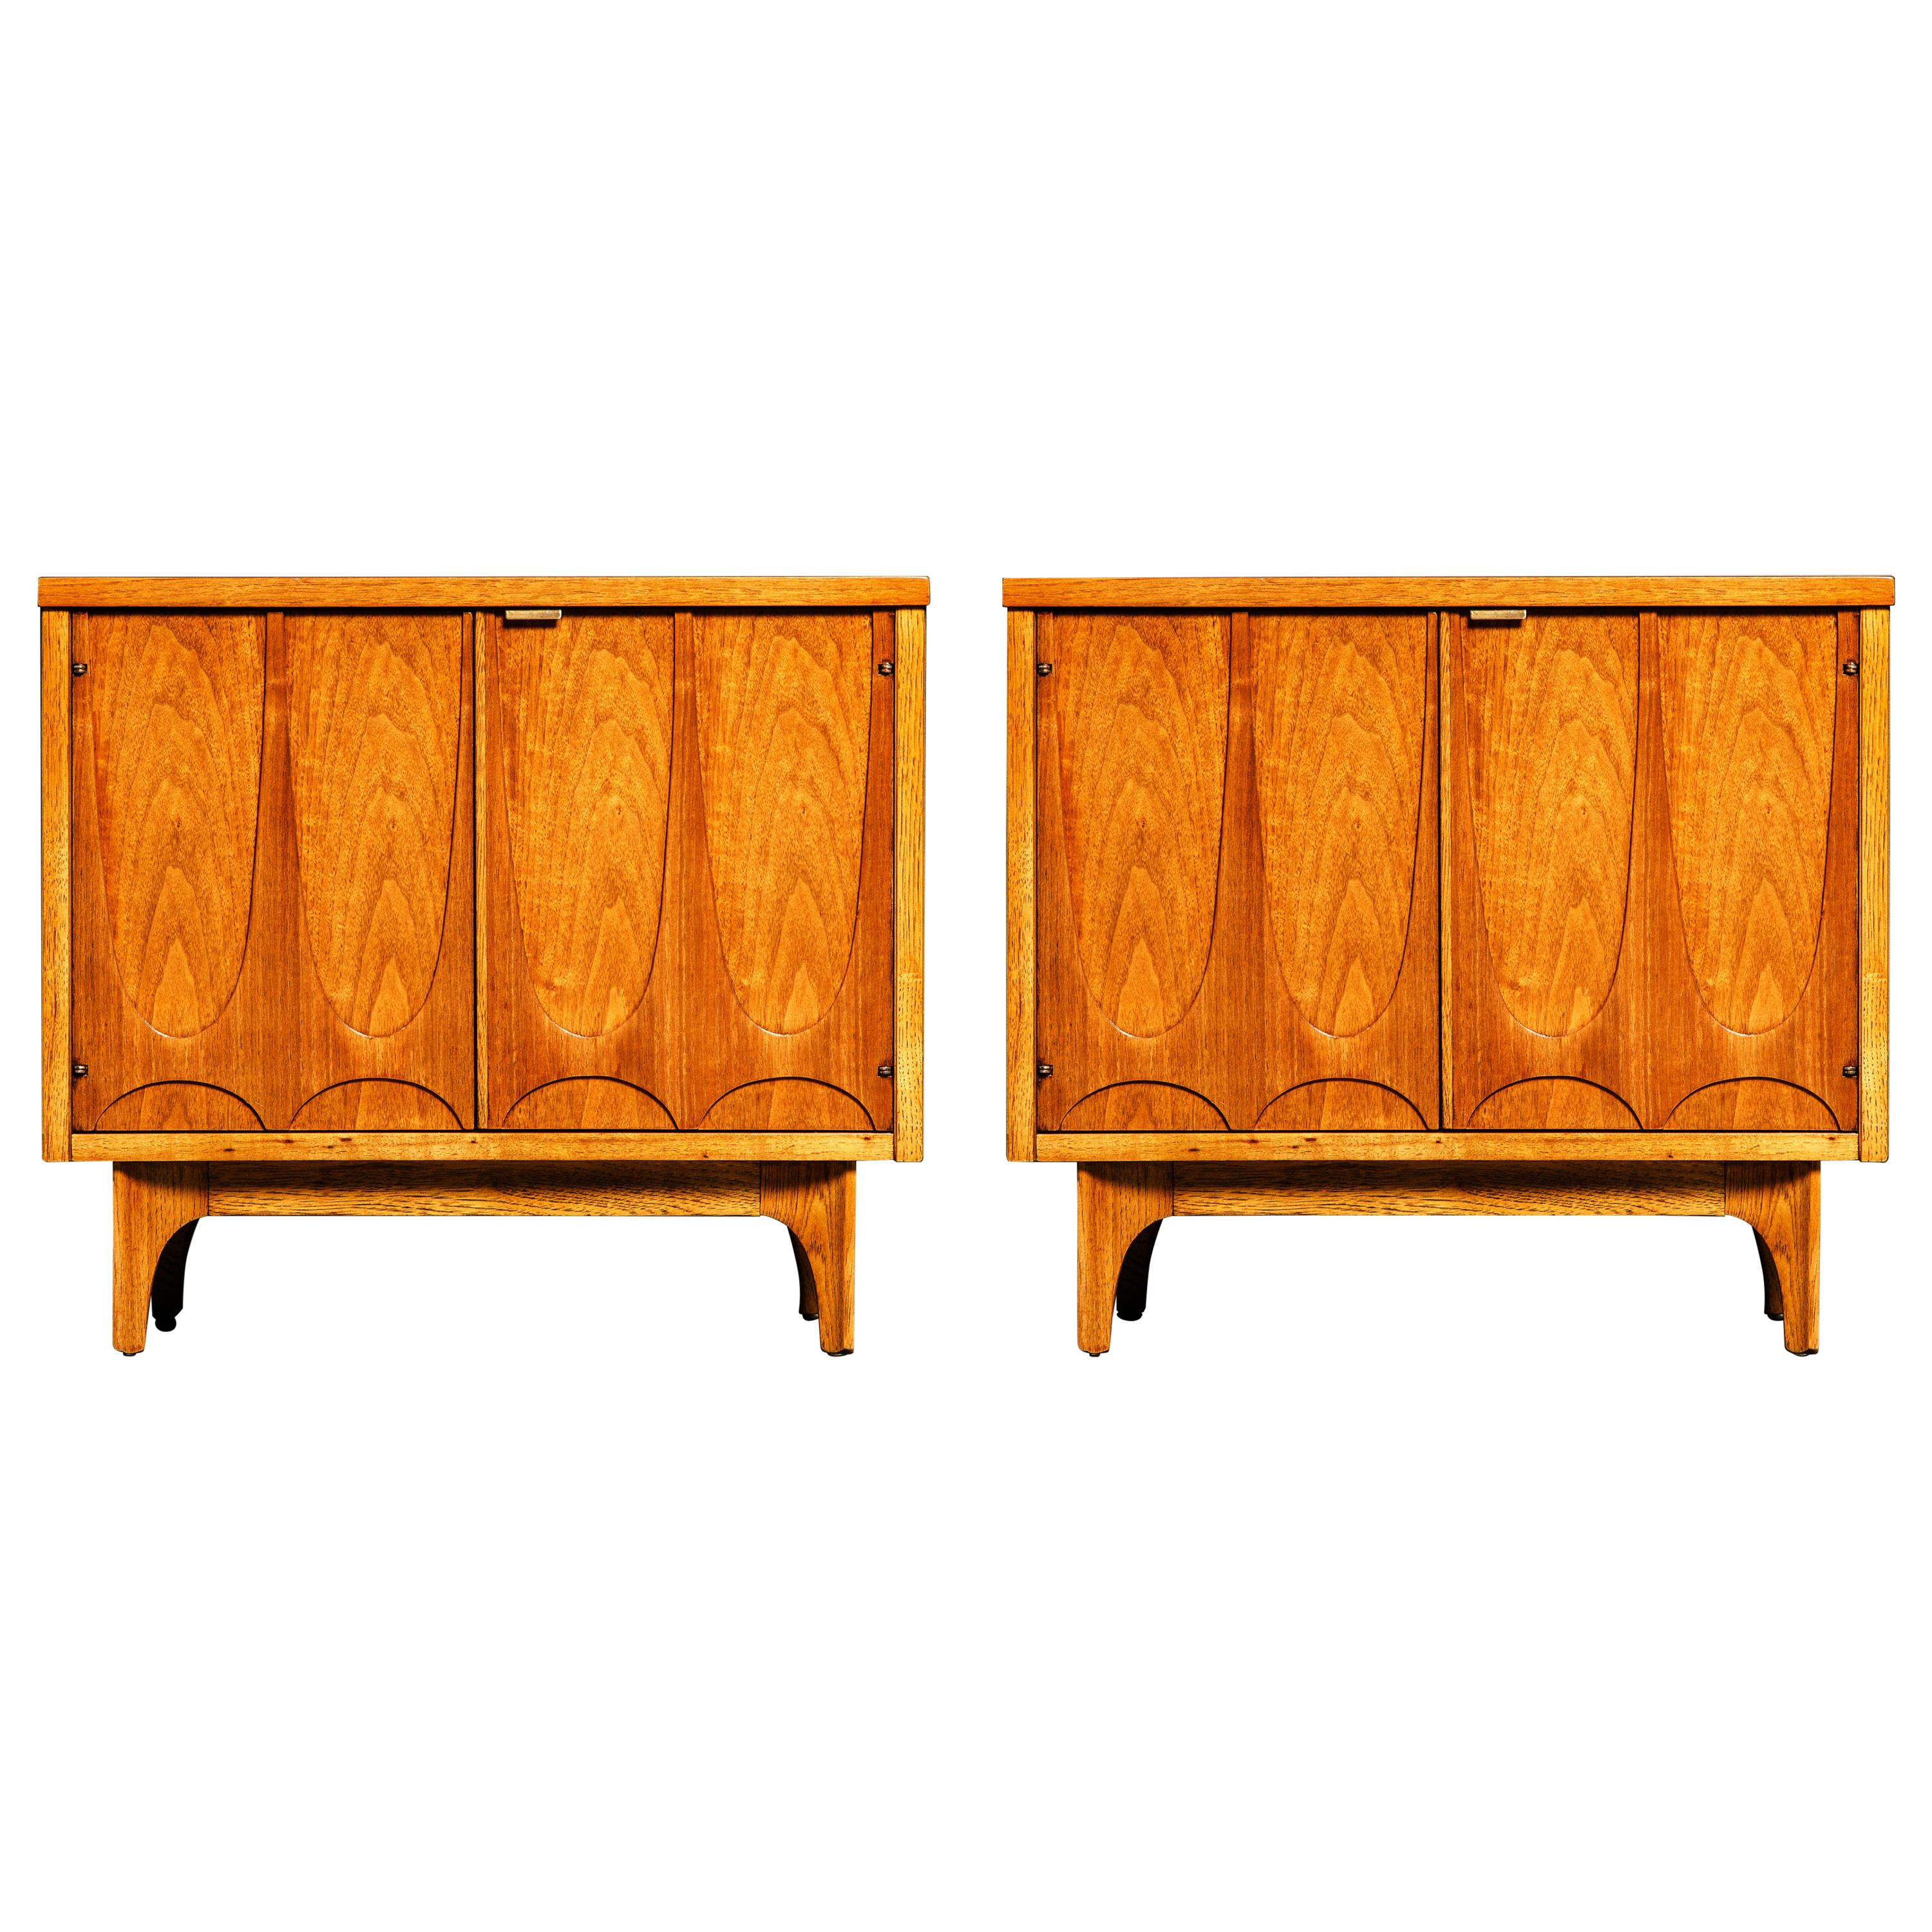 'Brasilia' by Broyhill Premier Pair of End Tables, Refinished, 1960s